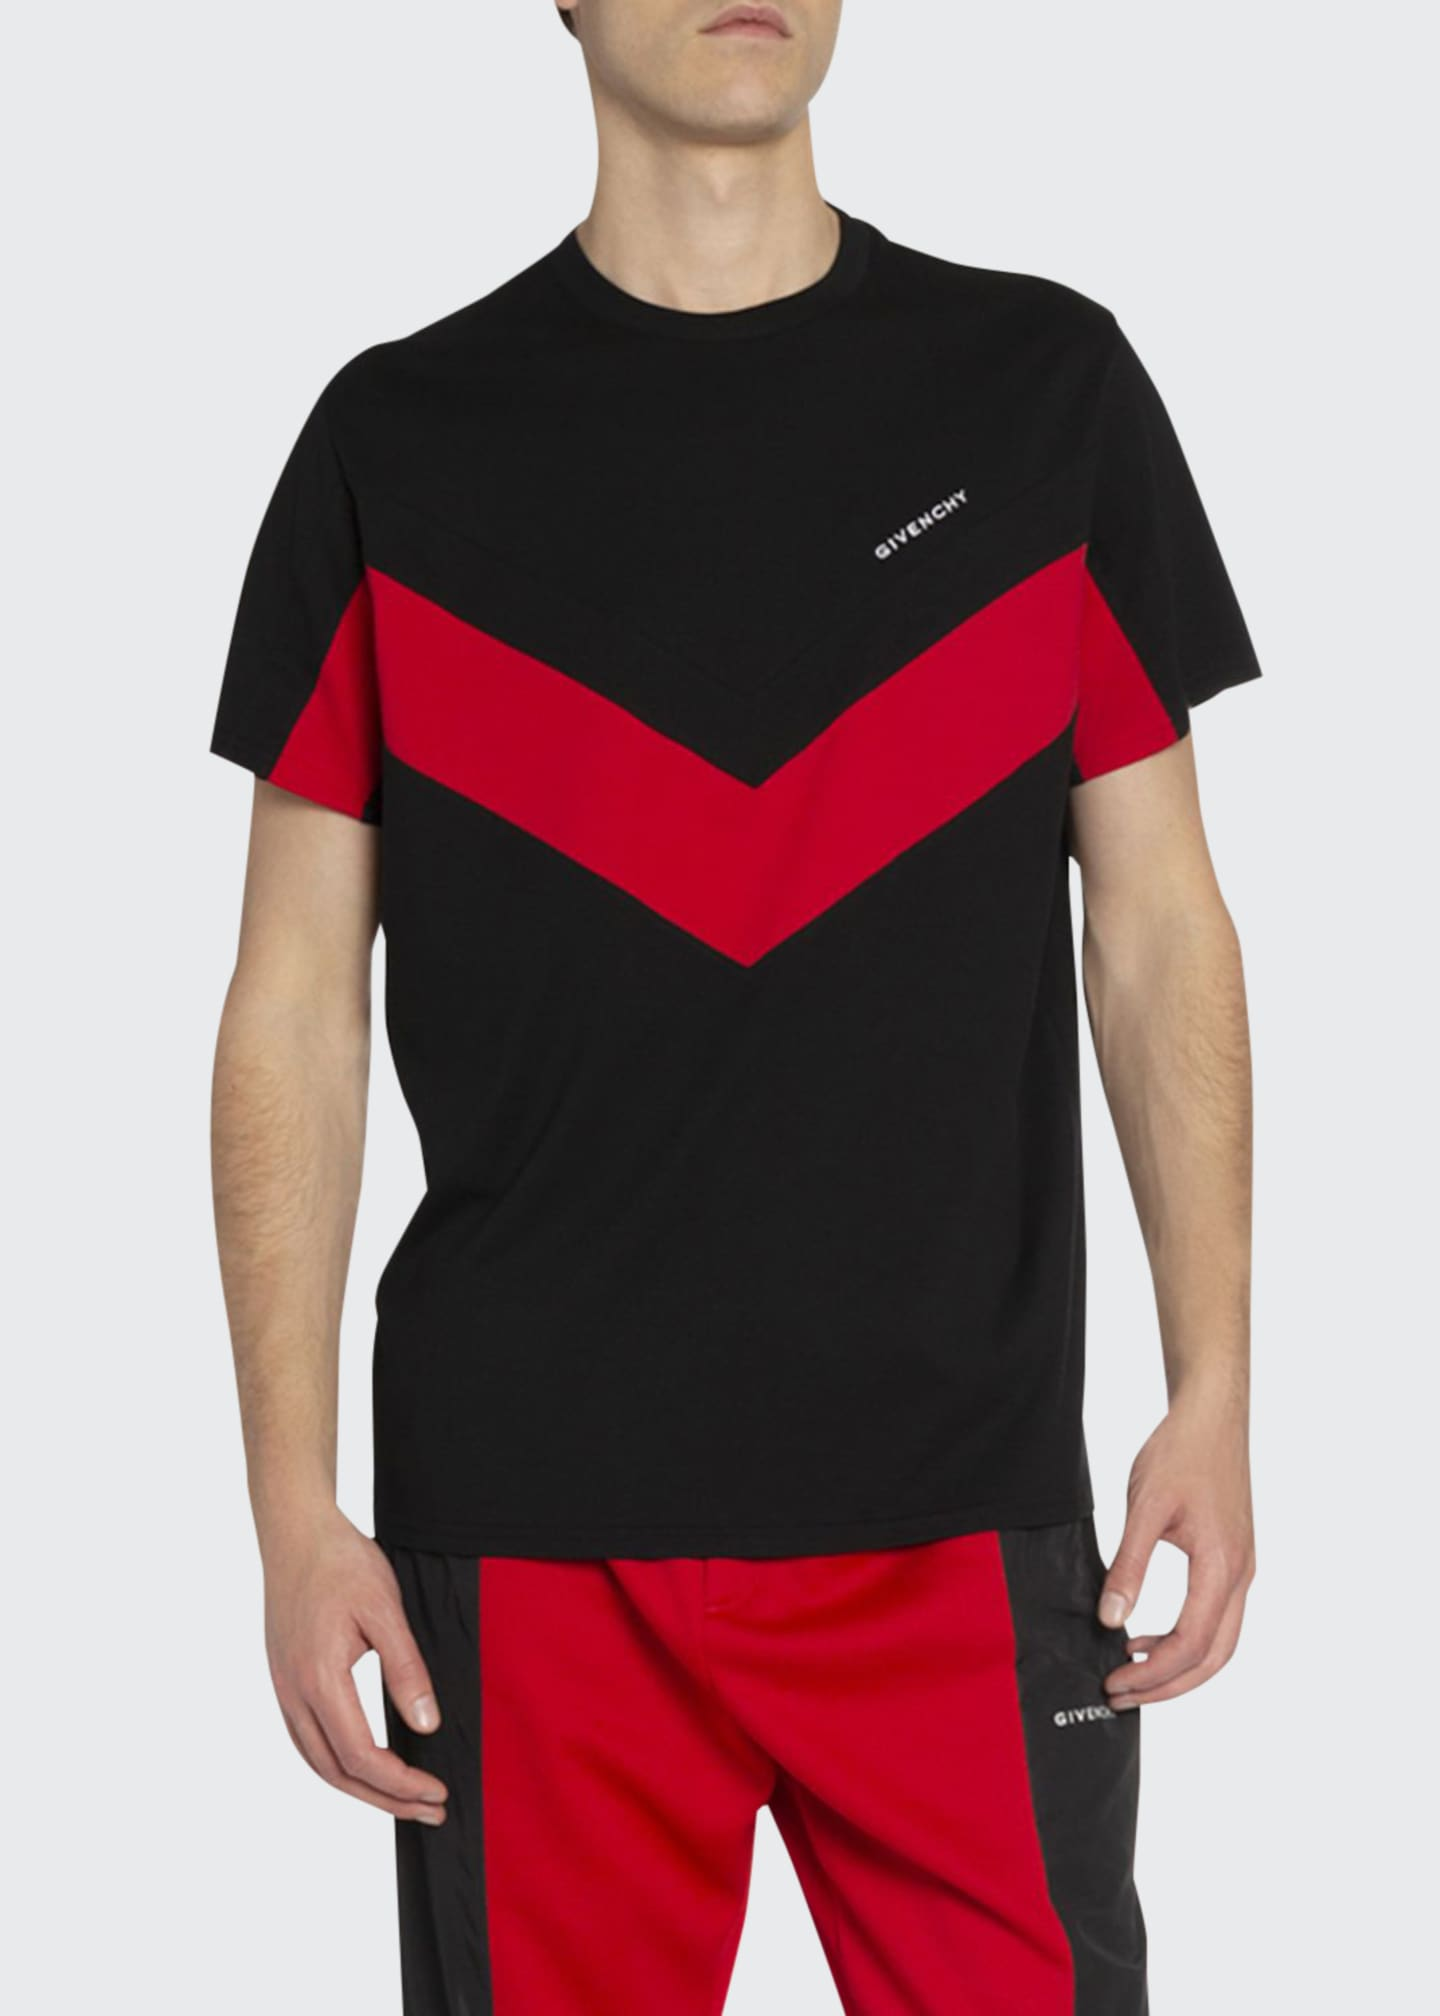 Givenchy Men's Banded Sporty T-Shirt